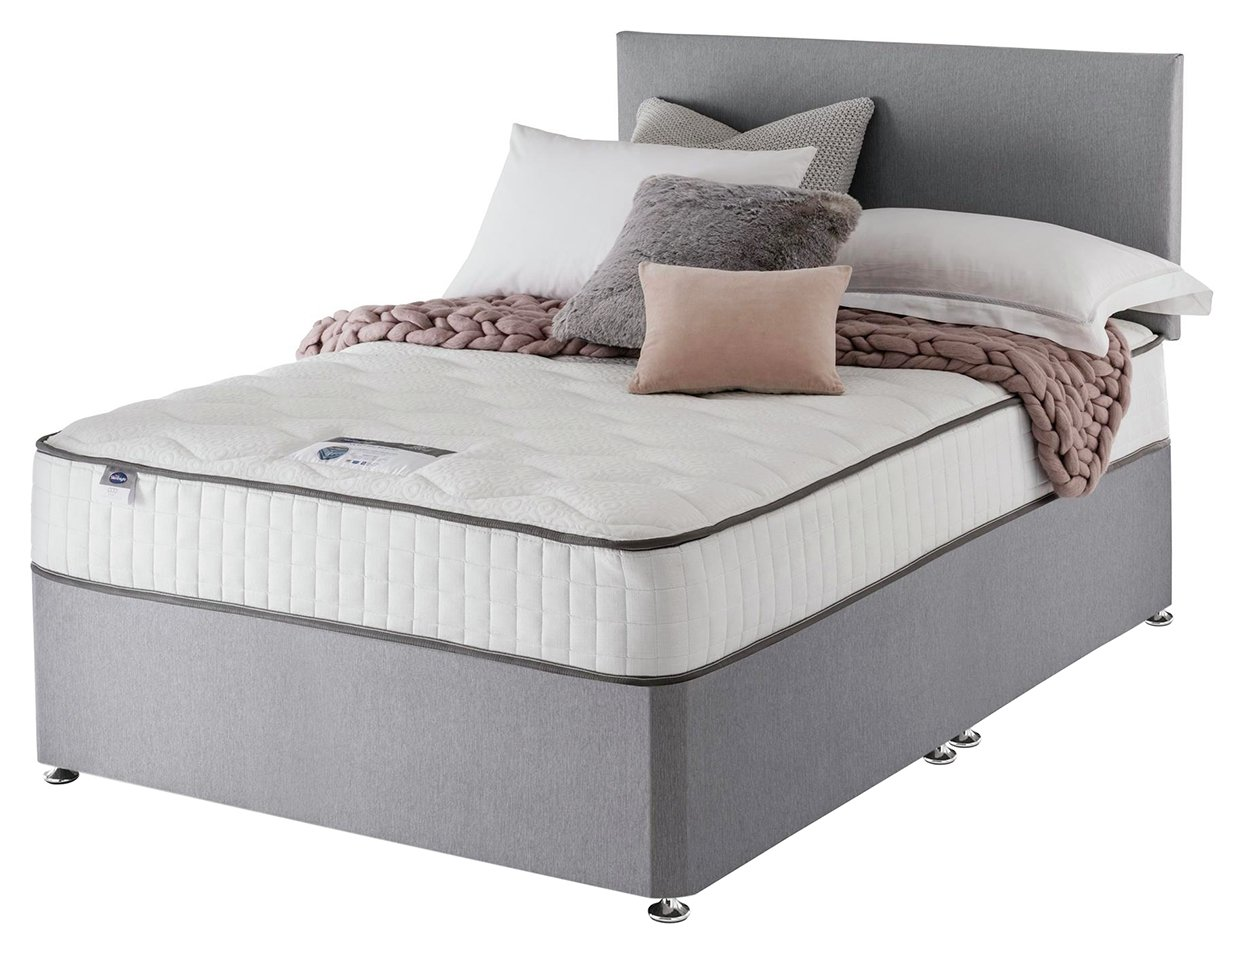 Silentnight - Middleton Pocket Memory - Kingsize - Divan Bed at Argos